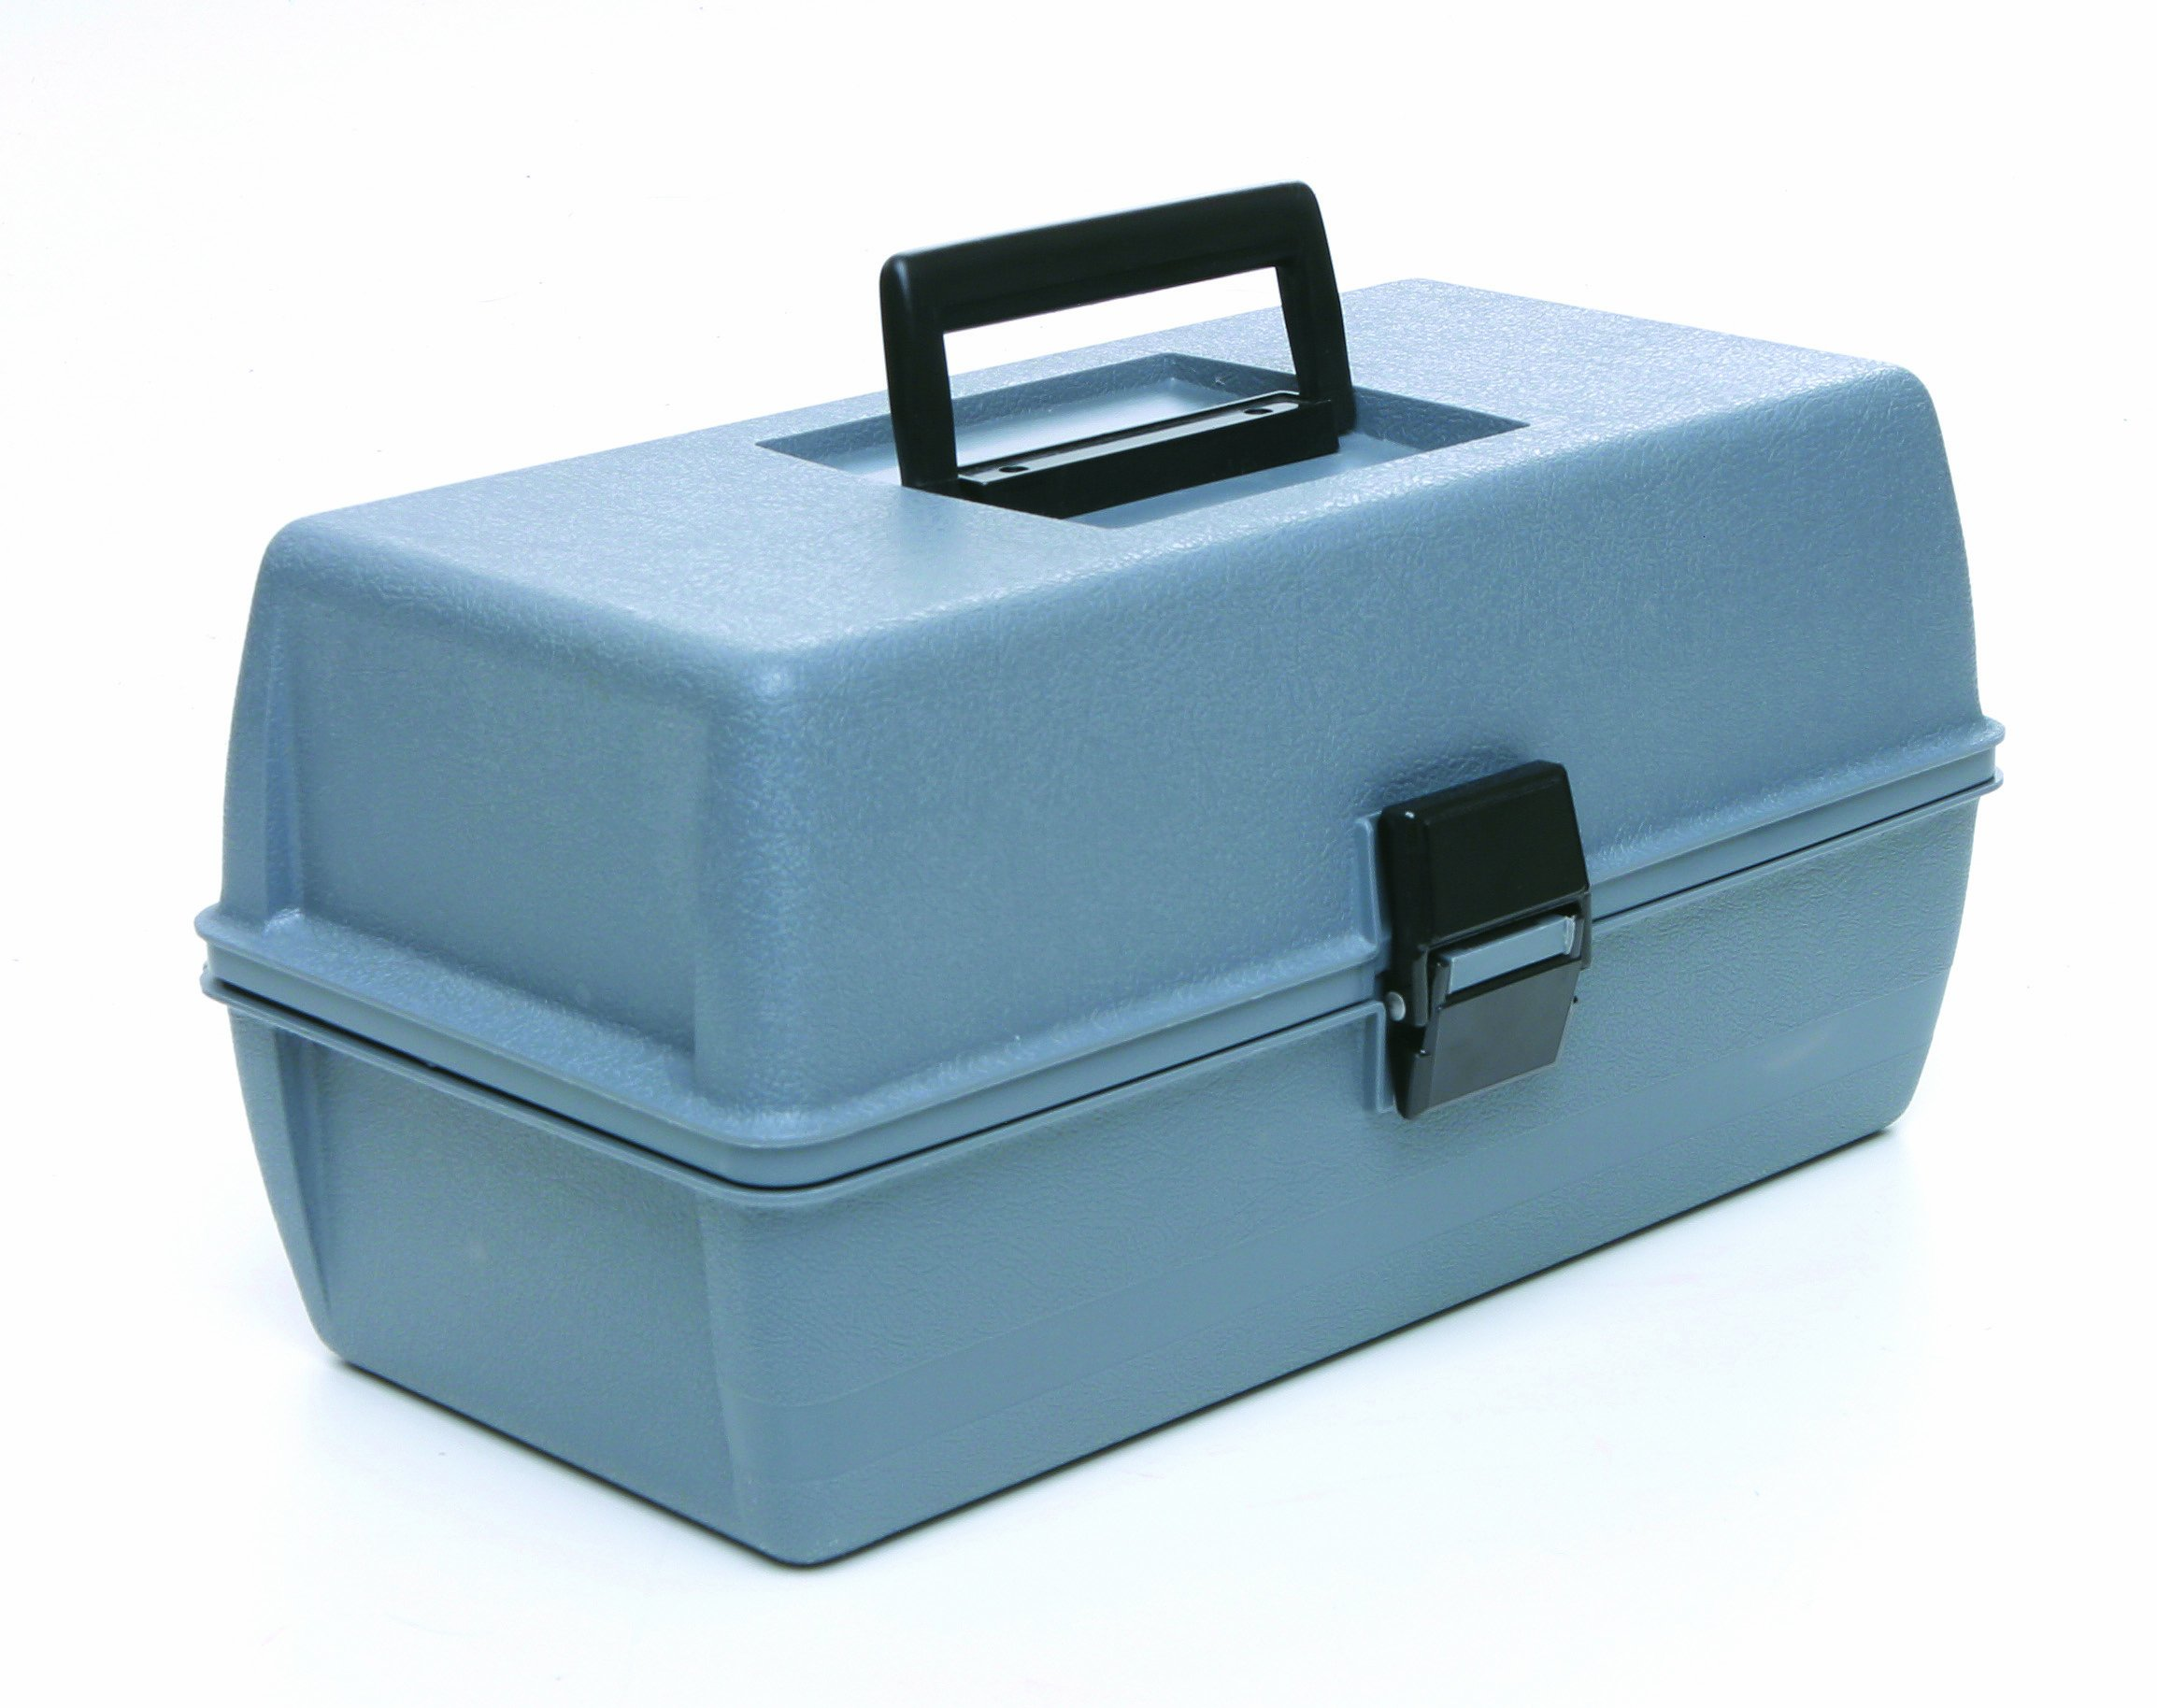 Brady LKX-TKLBOX Extra-Large Lockout Toolbox, Rugged Polyethylene